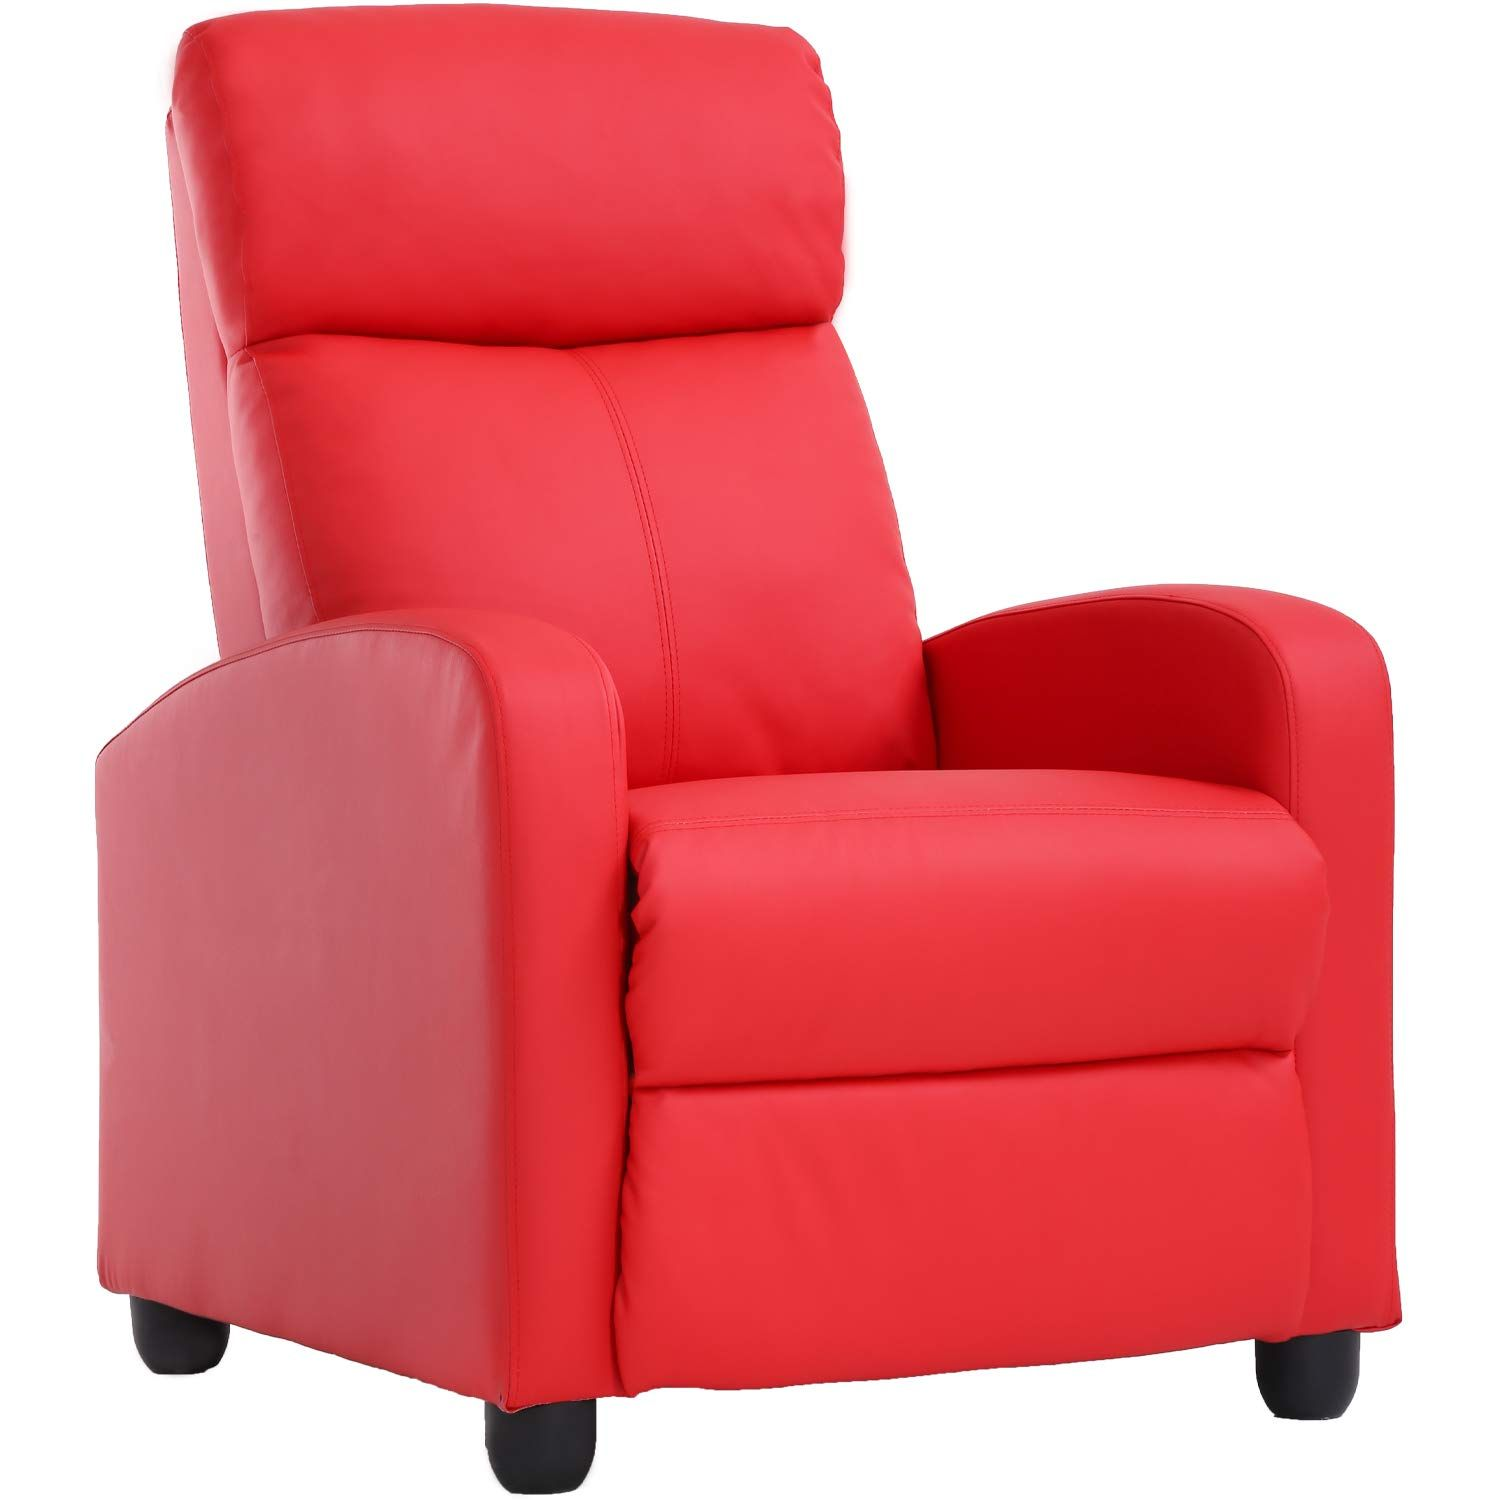 Recliner Chair For Living Room Recliner Sofa Reading Chair Winback Single Sofa Modern Reclining Chair Recliner Chair Couch With Chaise Leather Sofa Living Room